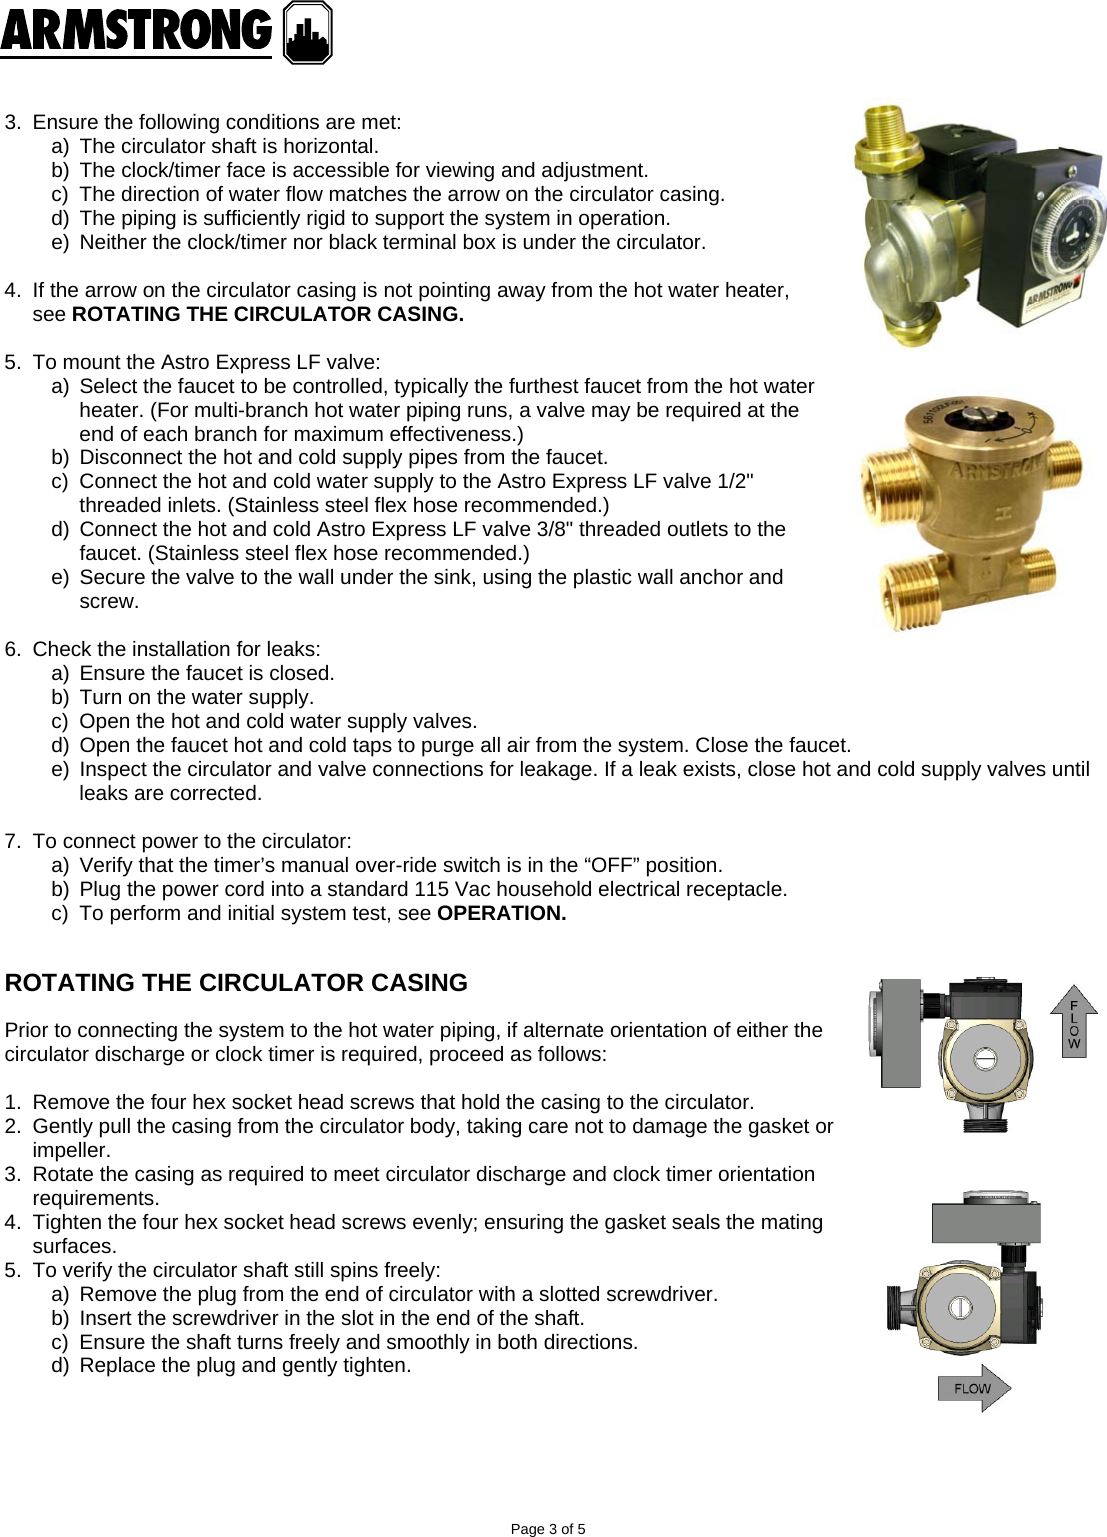 Page 3 of 5 - 537607 2 Armstrong Astro Express Recirculator System  Installation Manual AND OPERATING